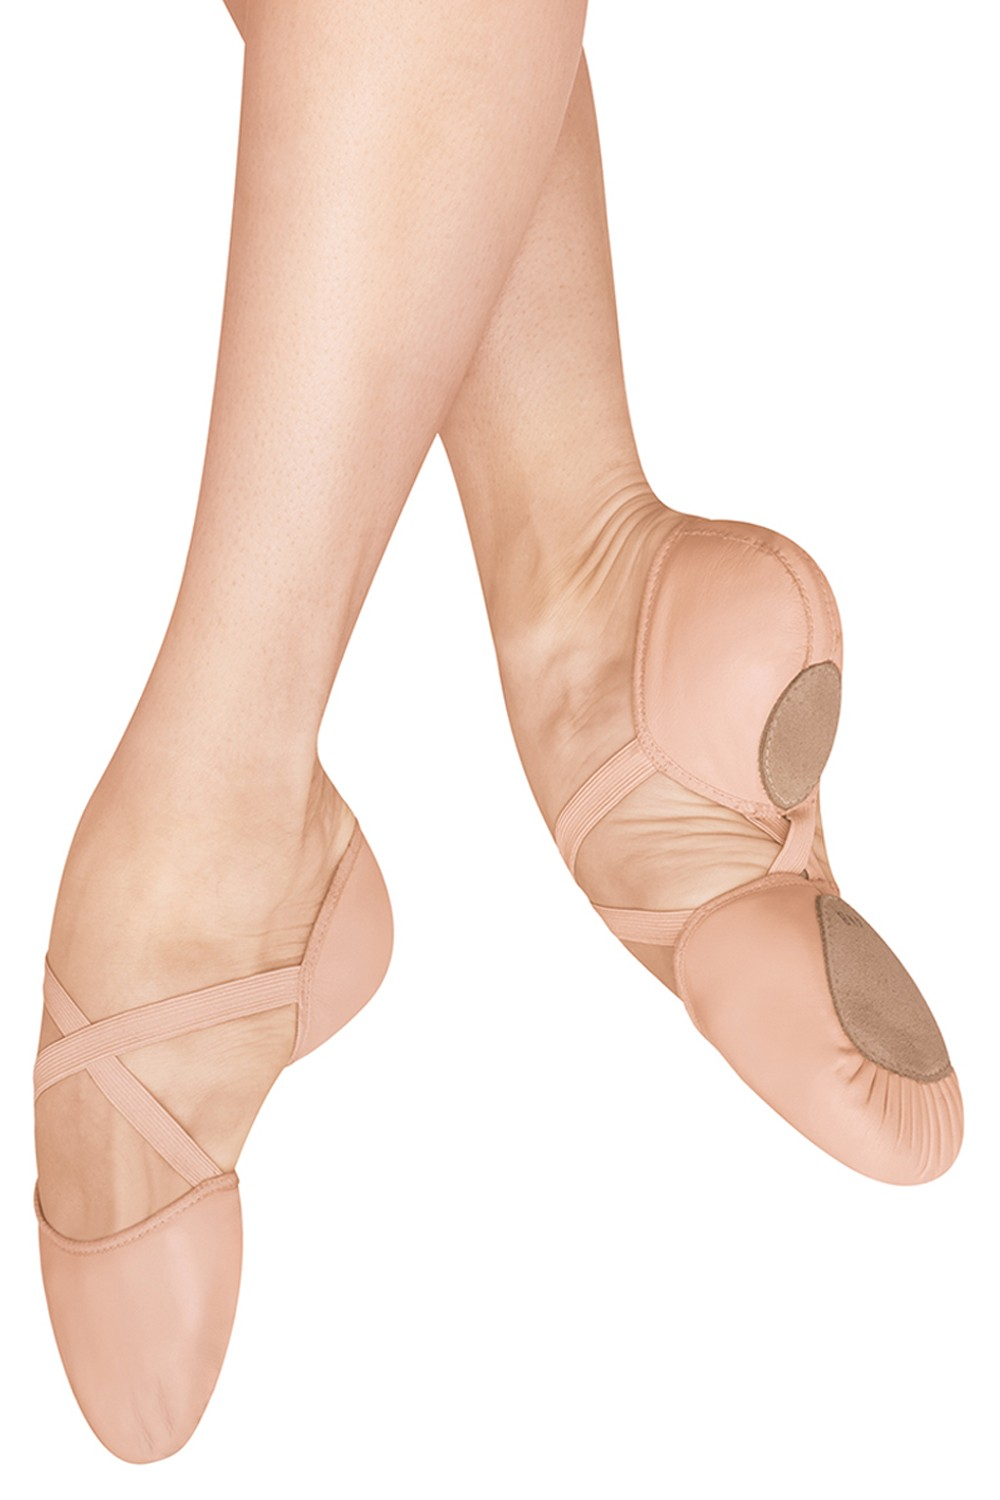 Elastosplit X Couro Women's Ballet Shoes